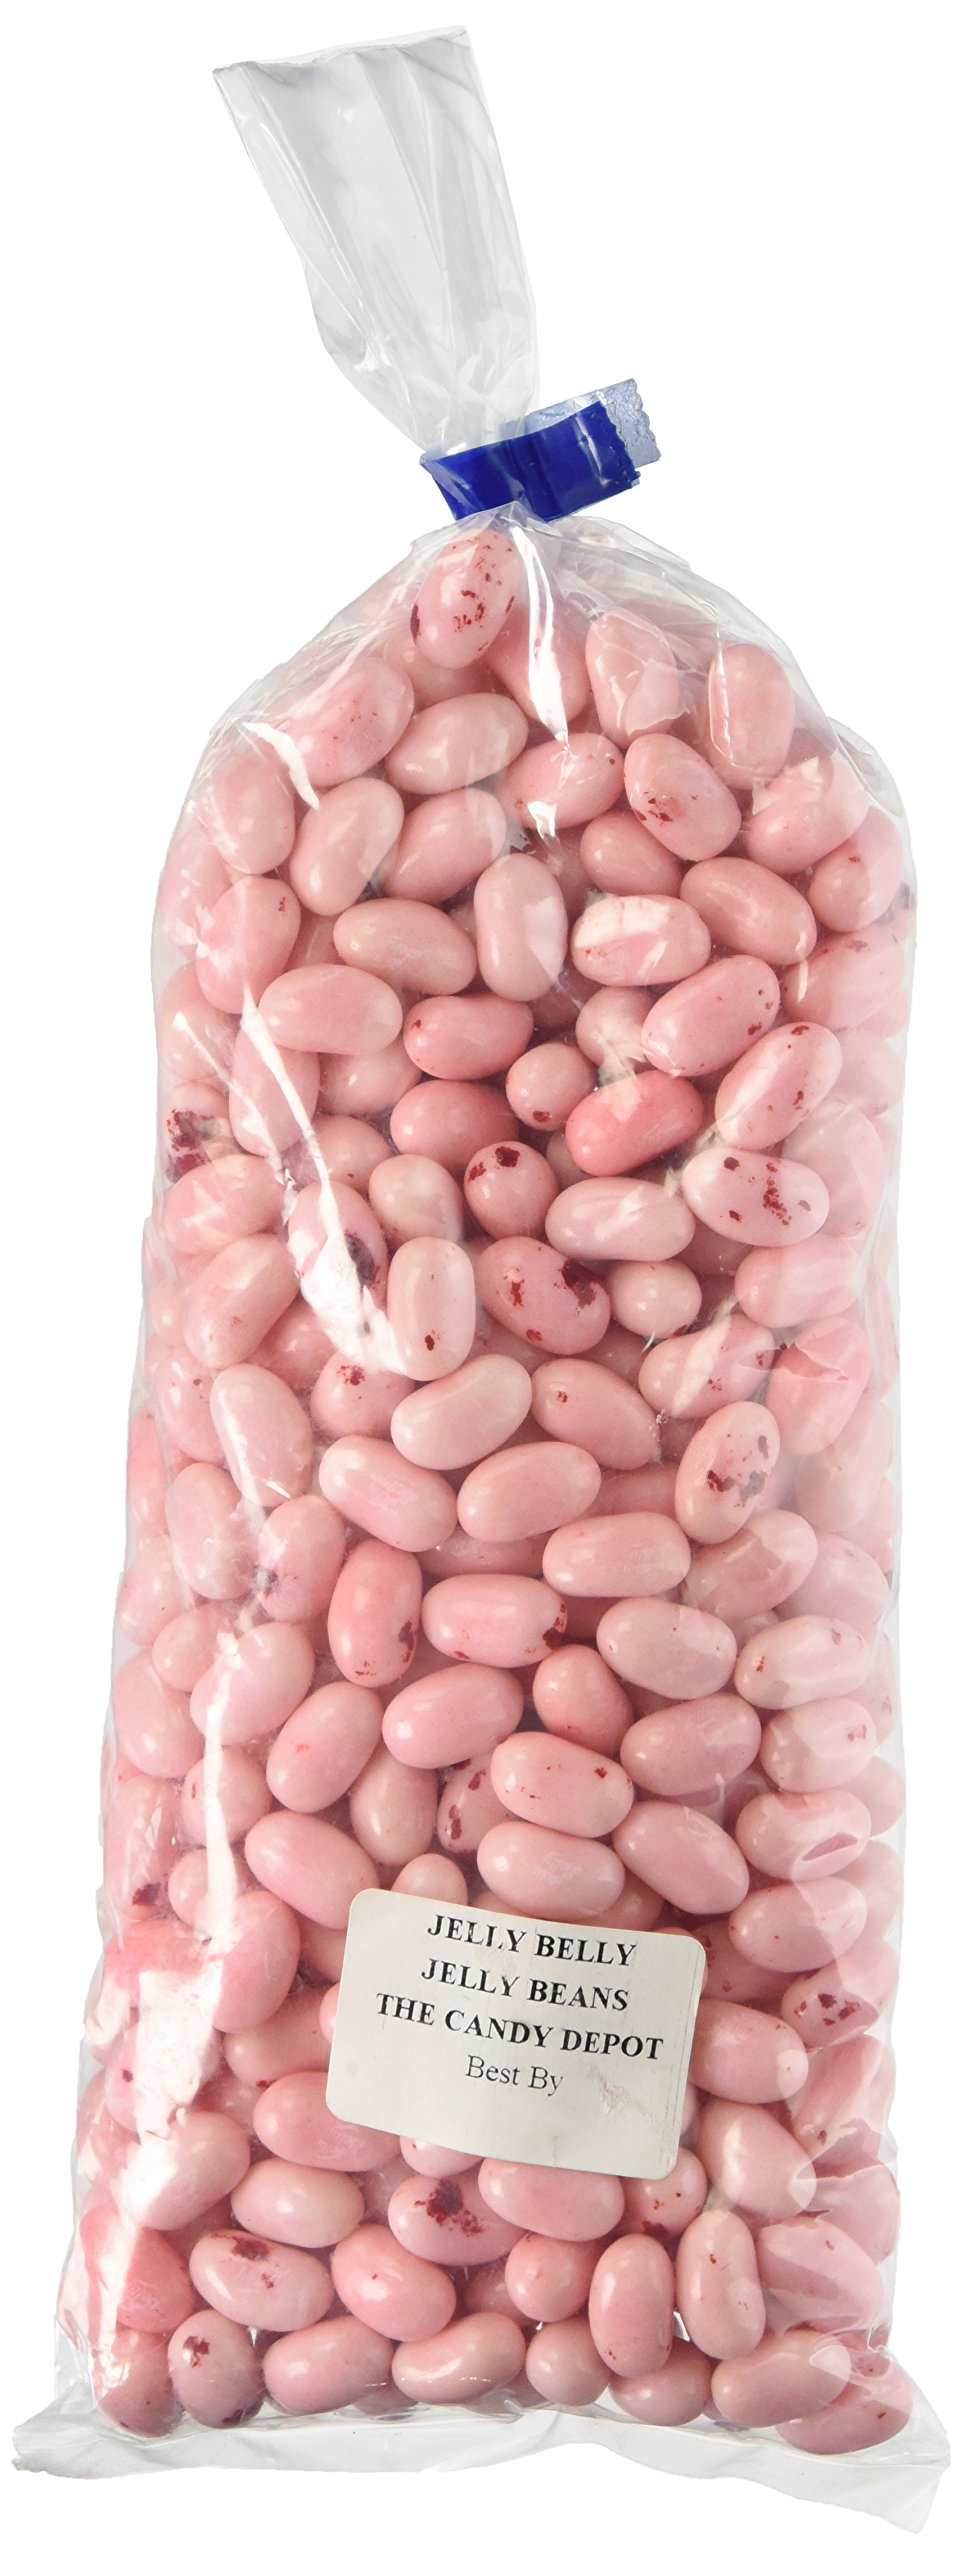 Jelly Belly Strawberry Cheesecake Jelly Beans (1 Pound Bag) - Pale Pink by Jelly Belly